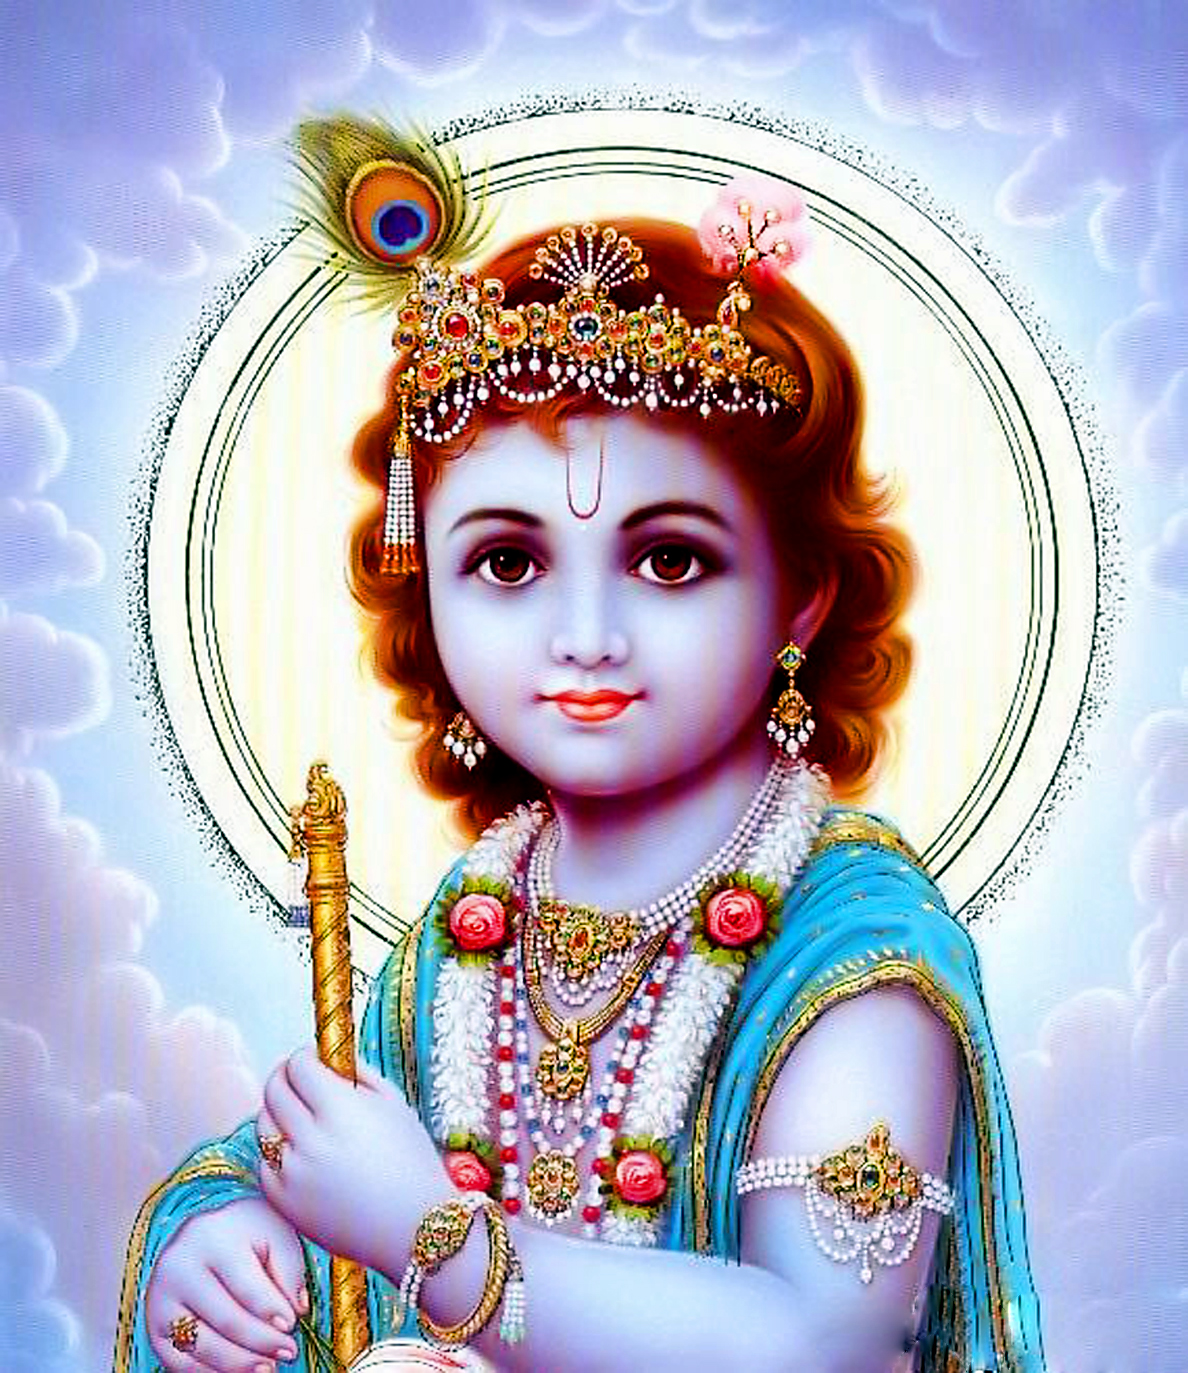 Hd wallpaper krishna - Lord Sree Krishna In Child Cute Hd Wallpaper